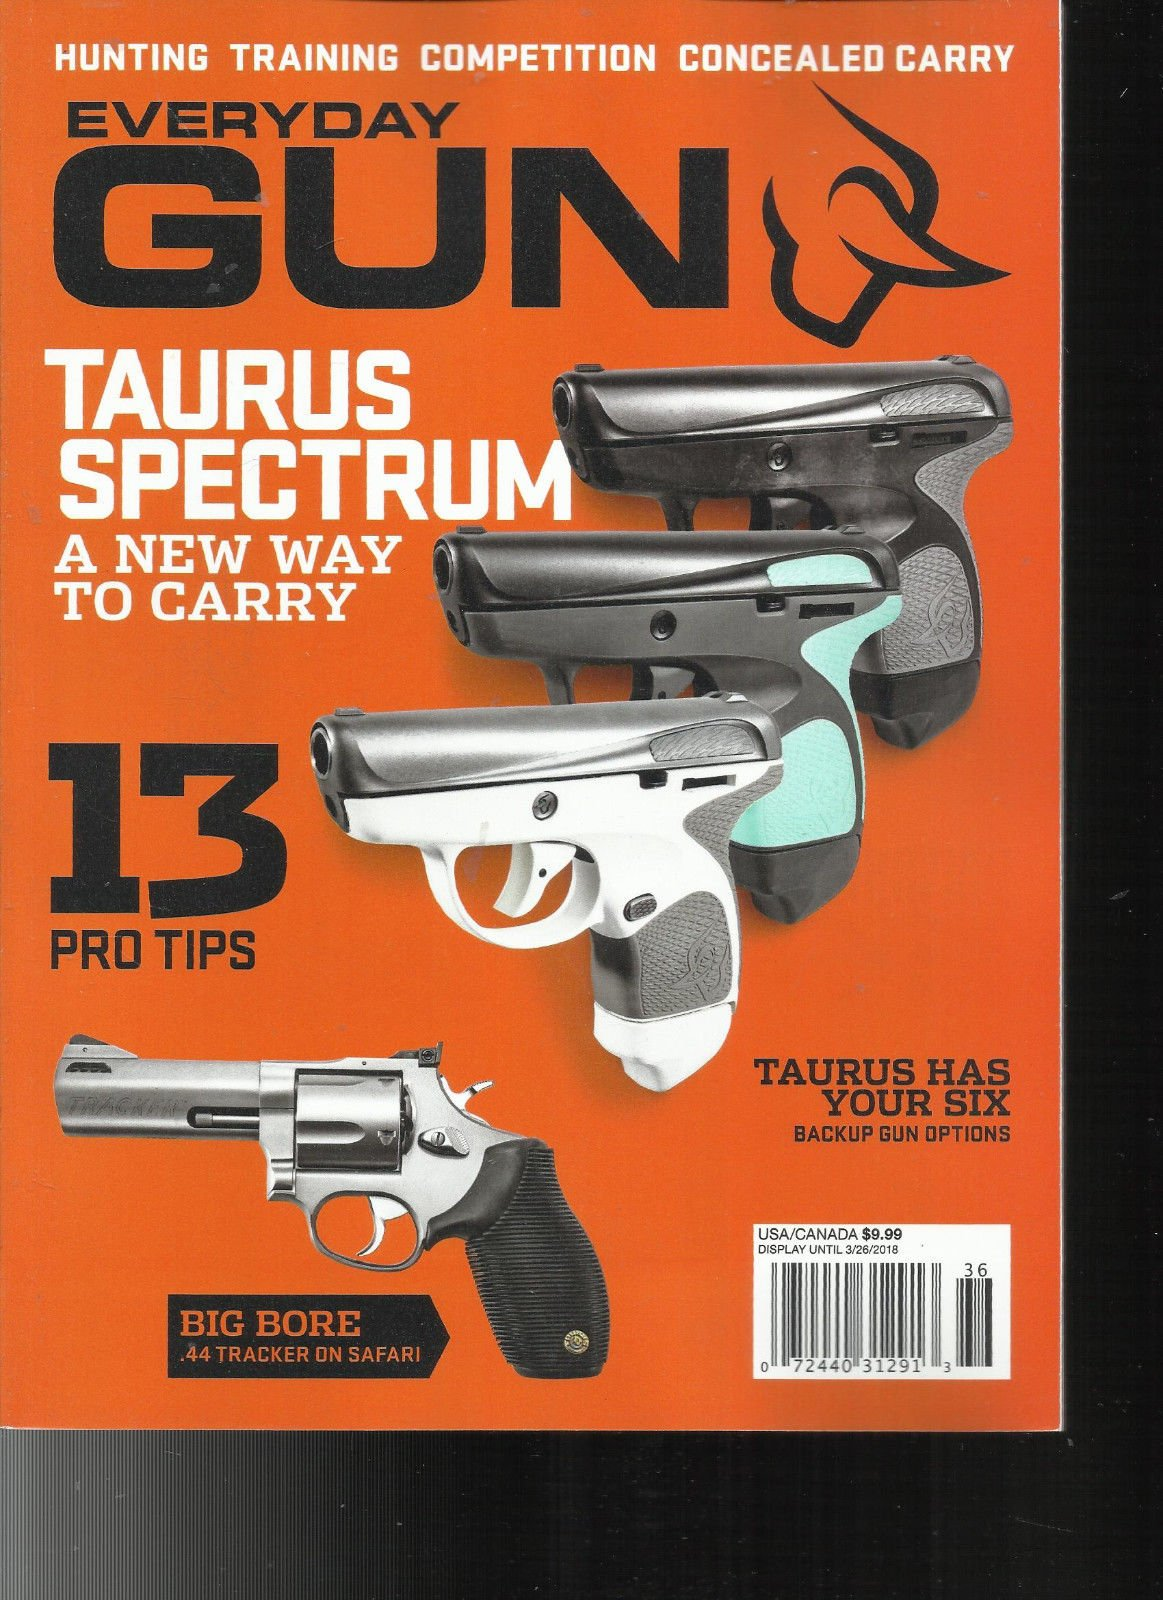 EVERYDAY GUN MAGAZINE, TAURUS SPECTRUM A NEW WAY TO CARRY ISSUE, 2018 by Generic